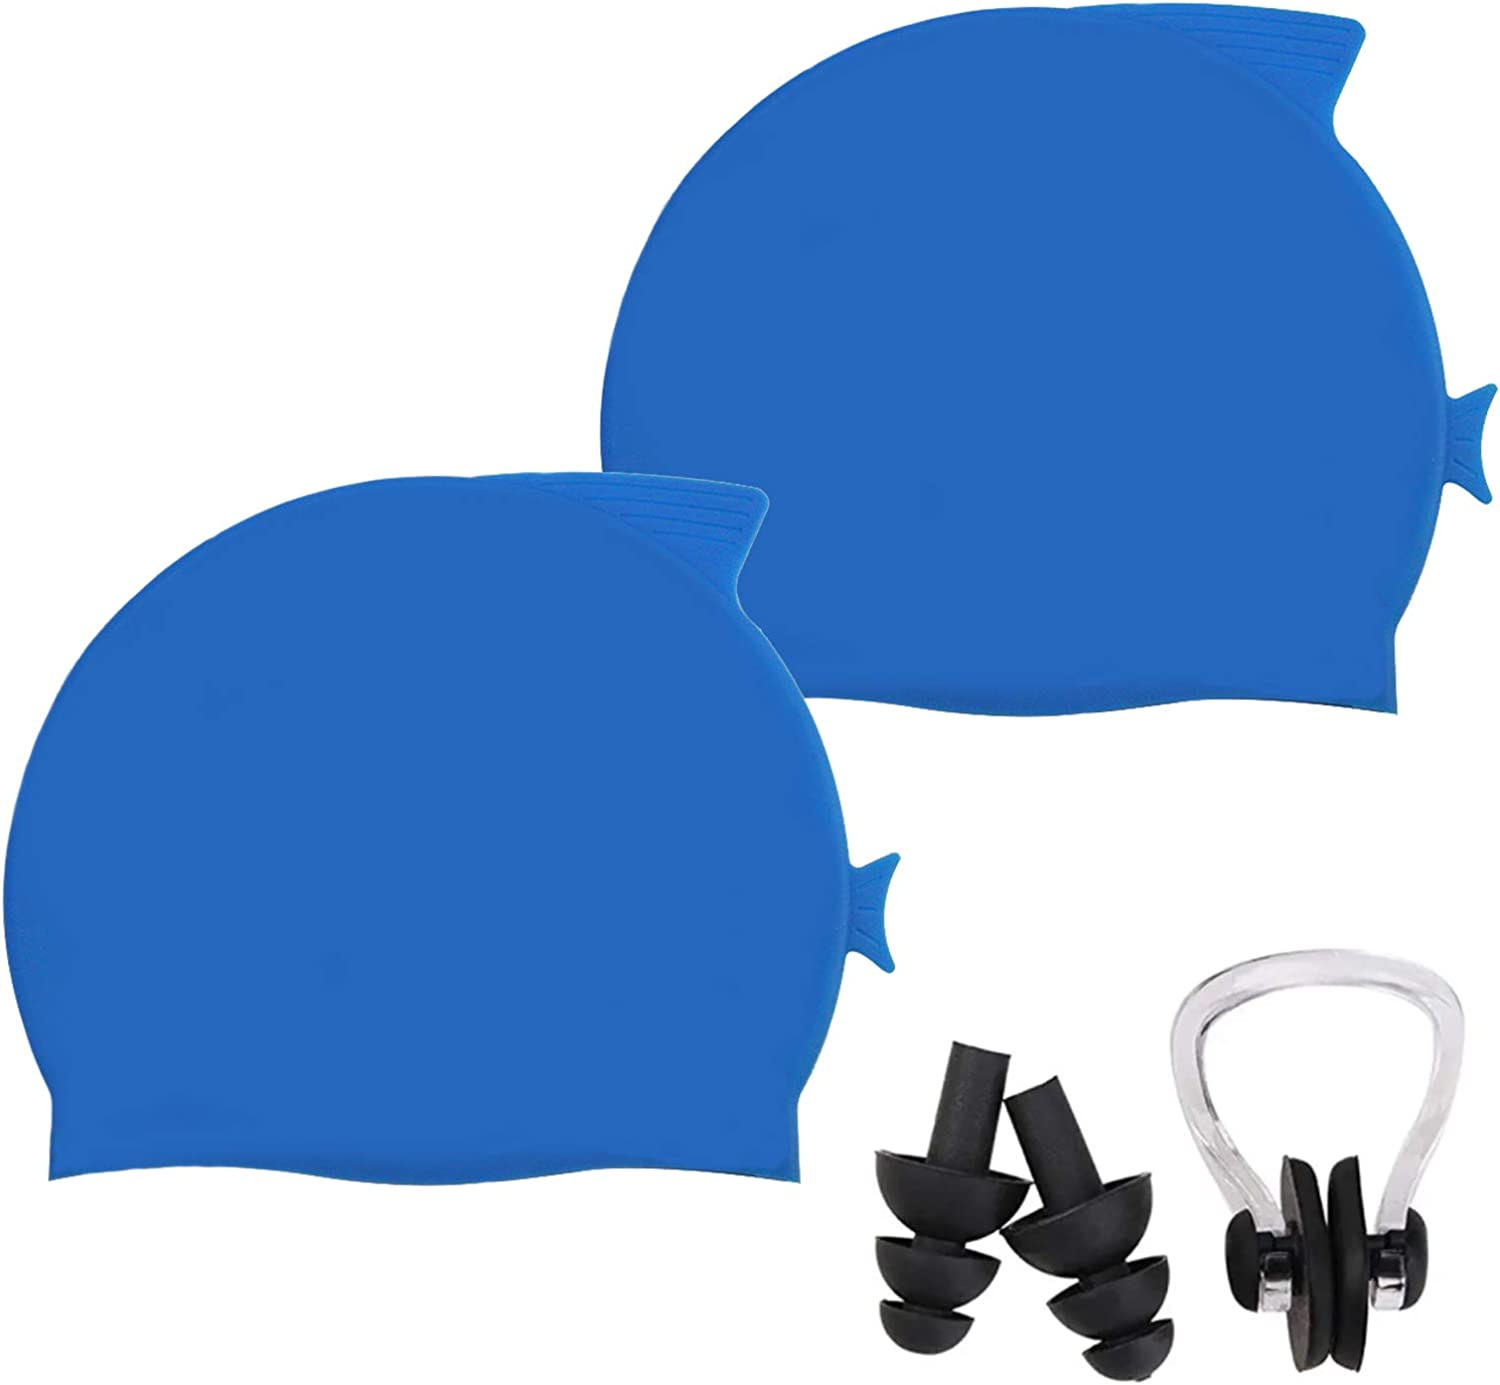 FDQNDXF 2 Pcs Milwaukee Mall Swim Caps for Silicone Anti-Slip Complete Free Shipping Child Hair Long S